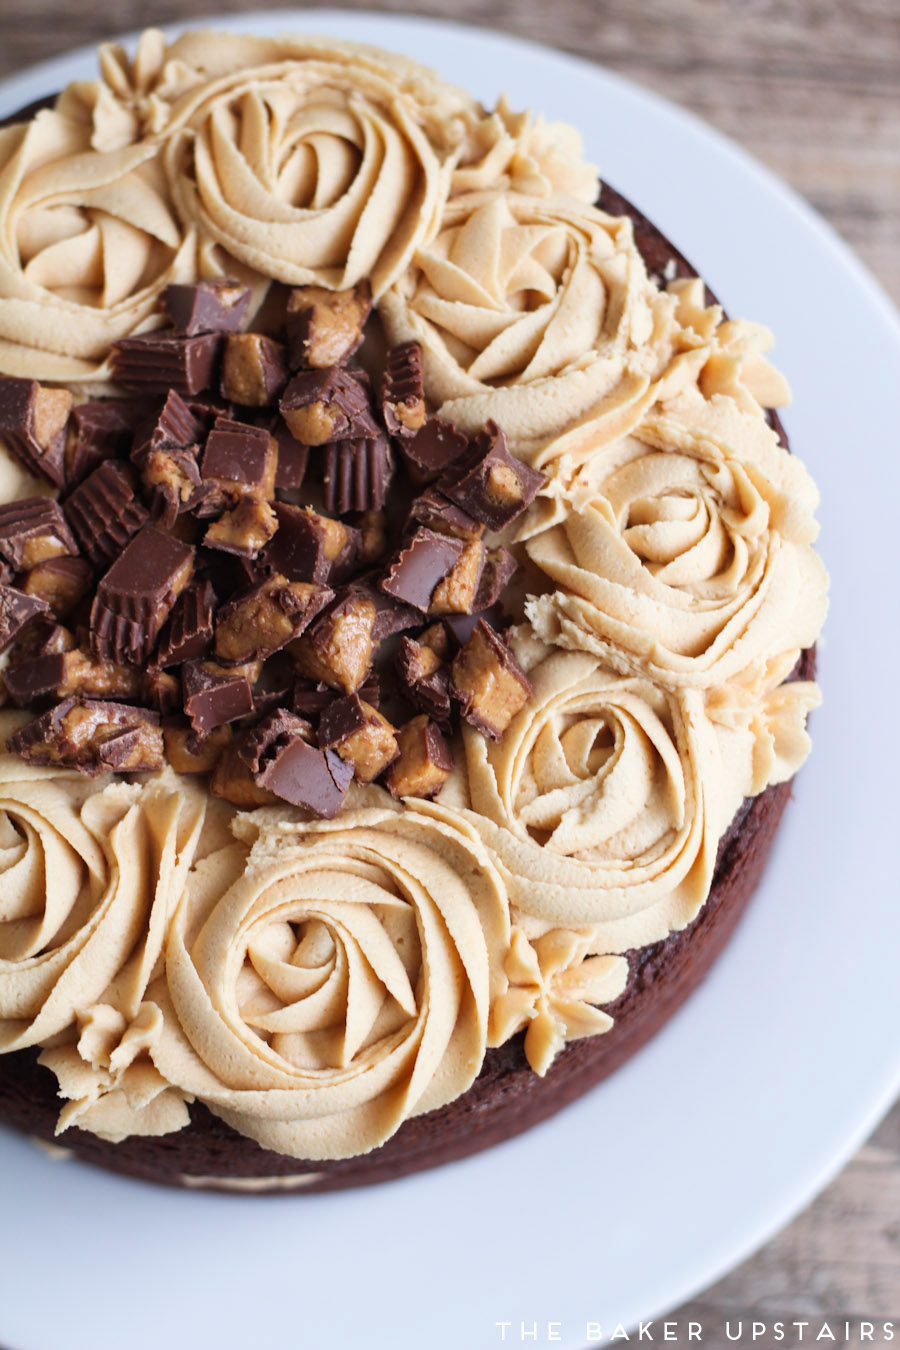 the baker upstairs: the best chocolate peanut butter cake